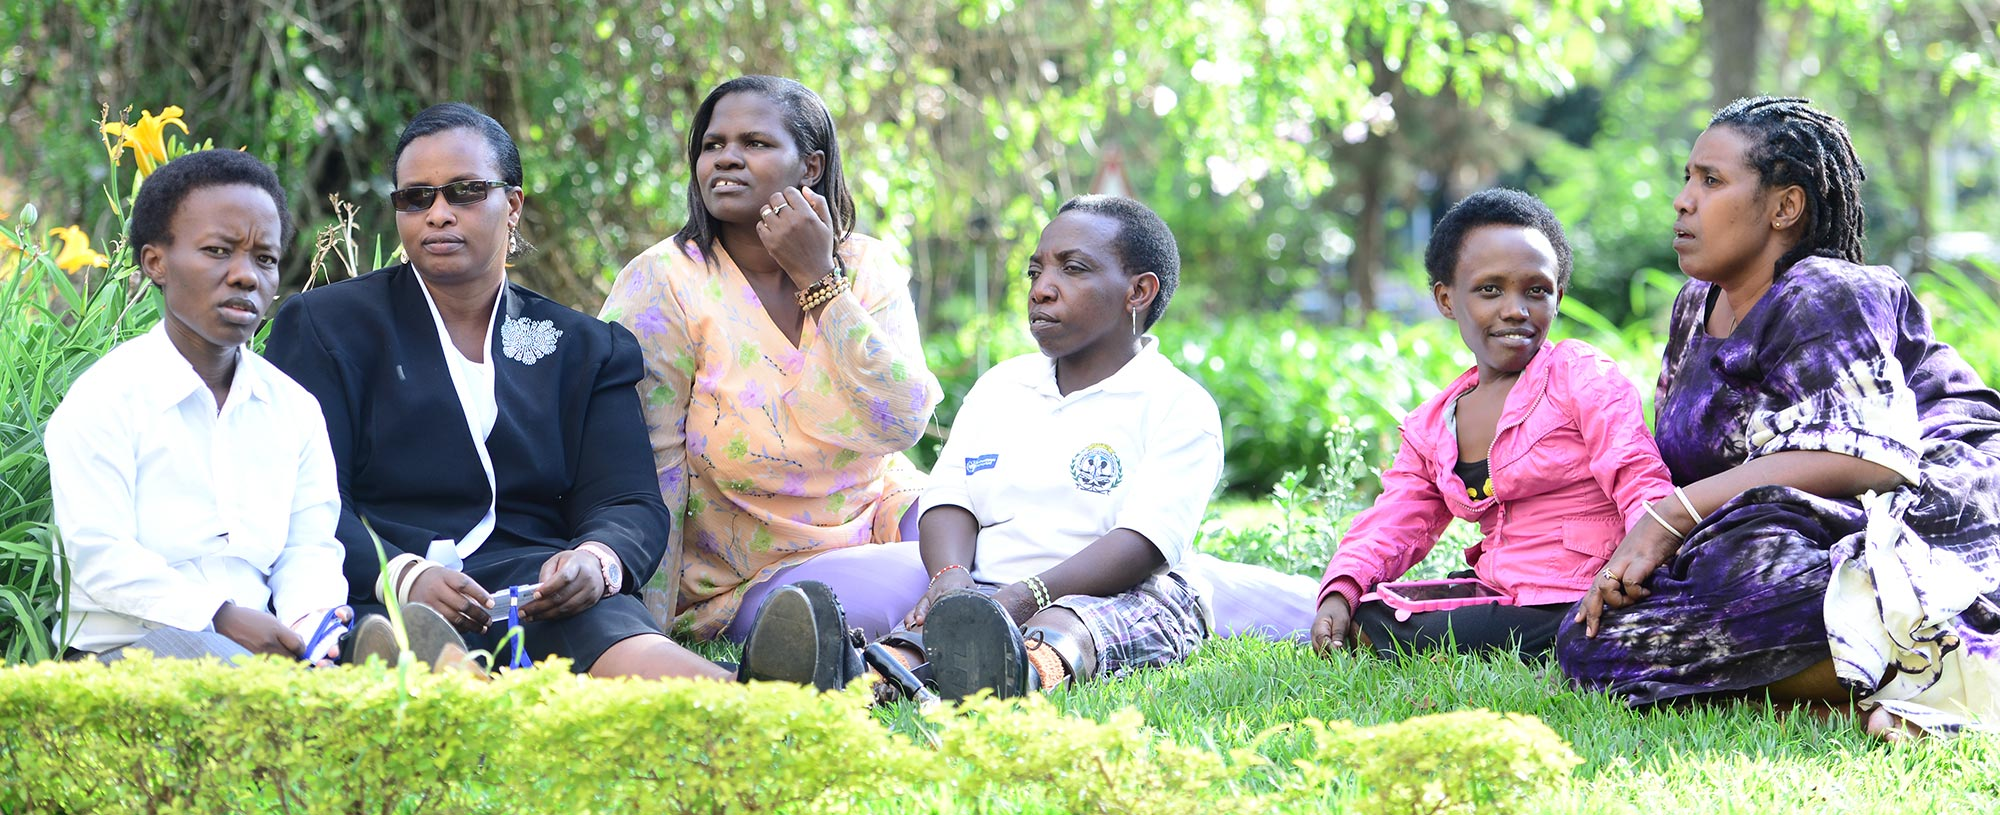 Group of Rwandan women with disabilities talking